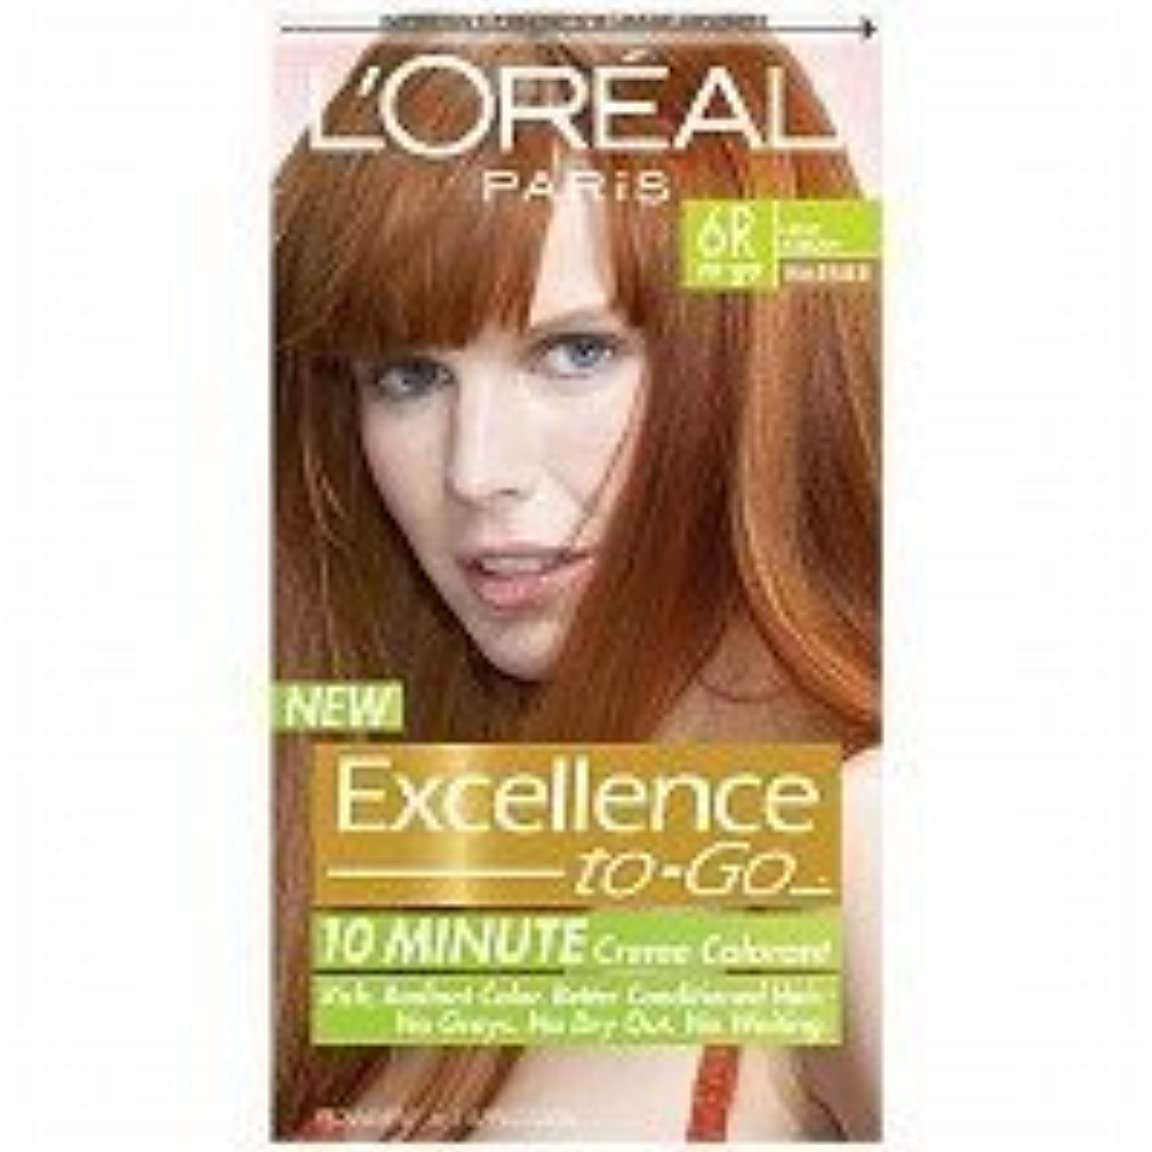 生態学コンパス多年生L'Oreal Paris Excellence To-Go 10-Minute Cr?N?Nme Coloring, Light Auburn 6R by L'Oreal Paris Hair Color [並行輸入品]